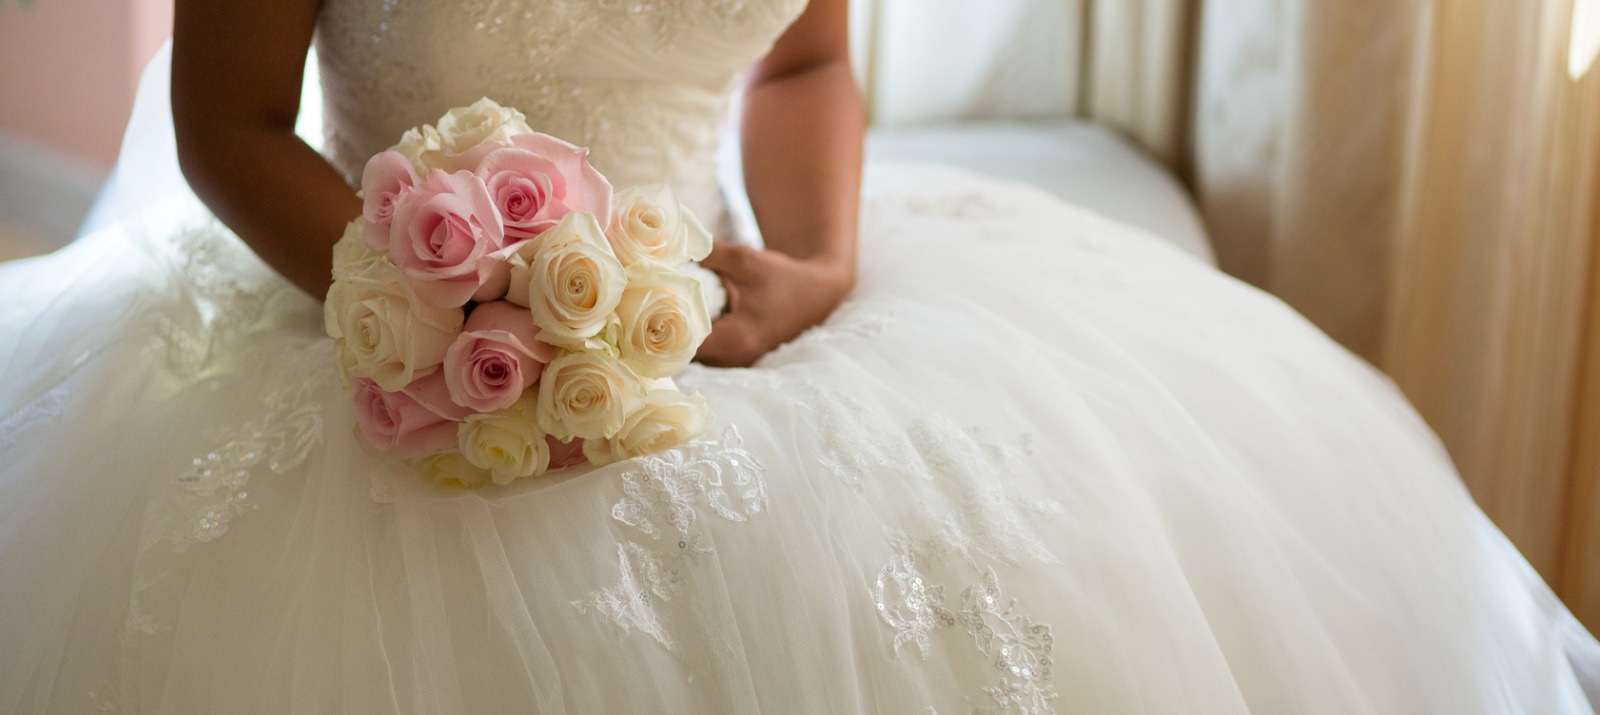 Wedding Dress Cleaning Tips Dry Cleaning And Laundry Tips